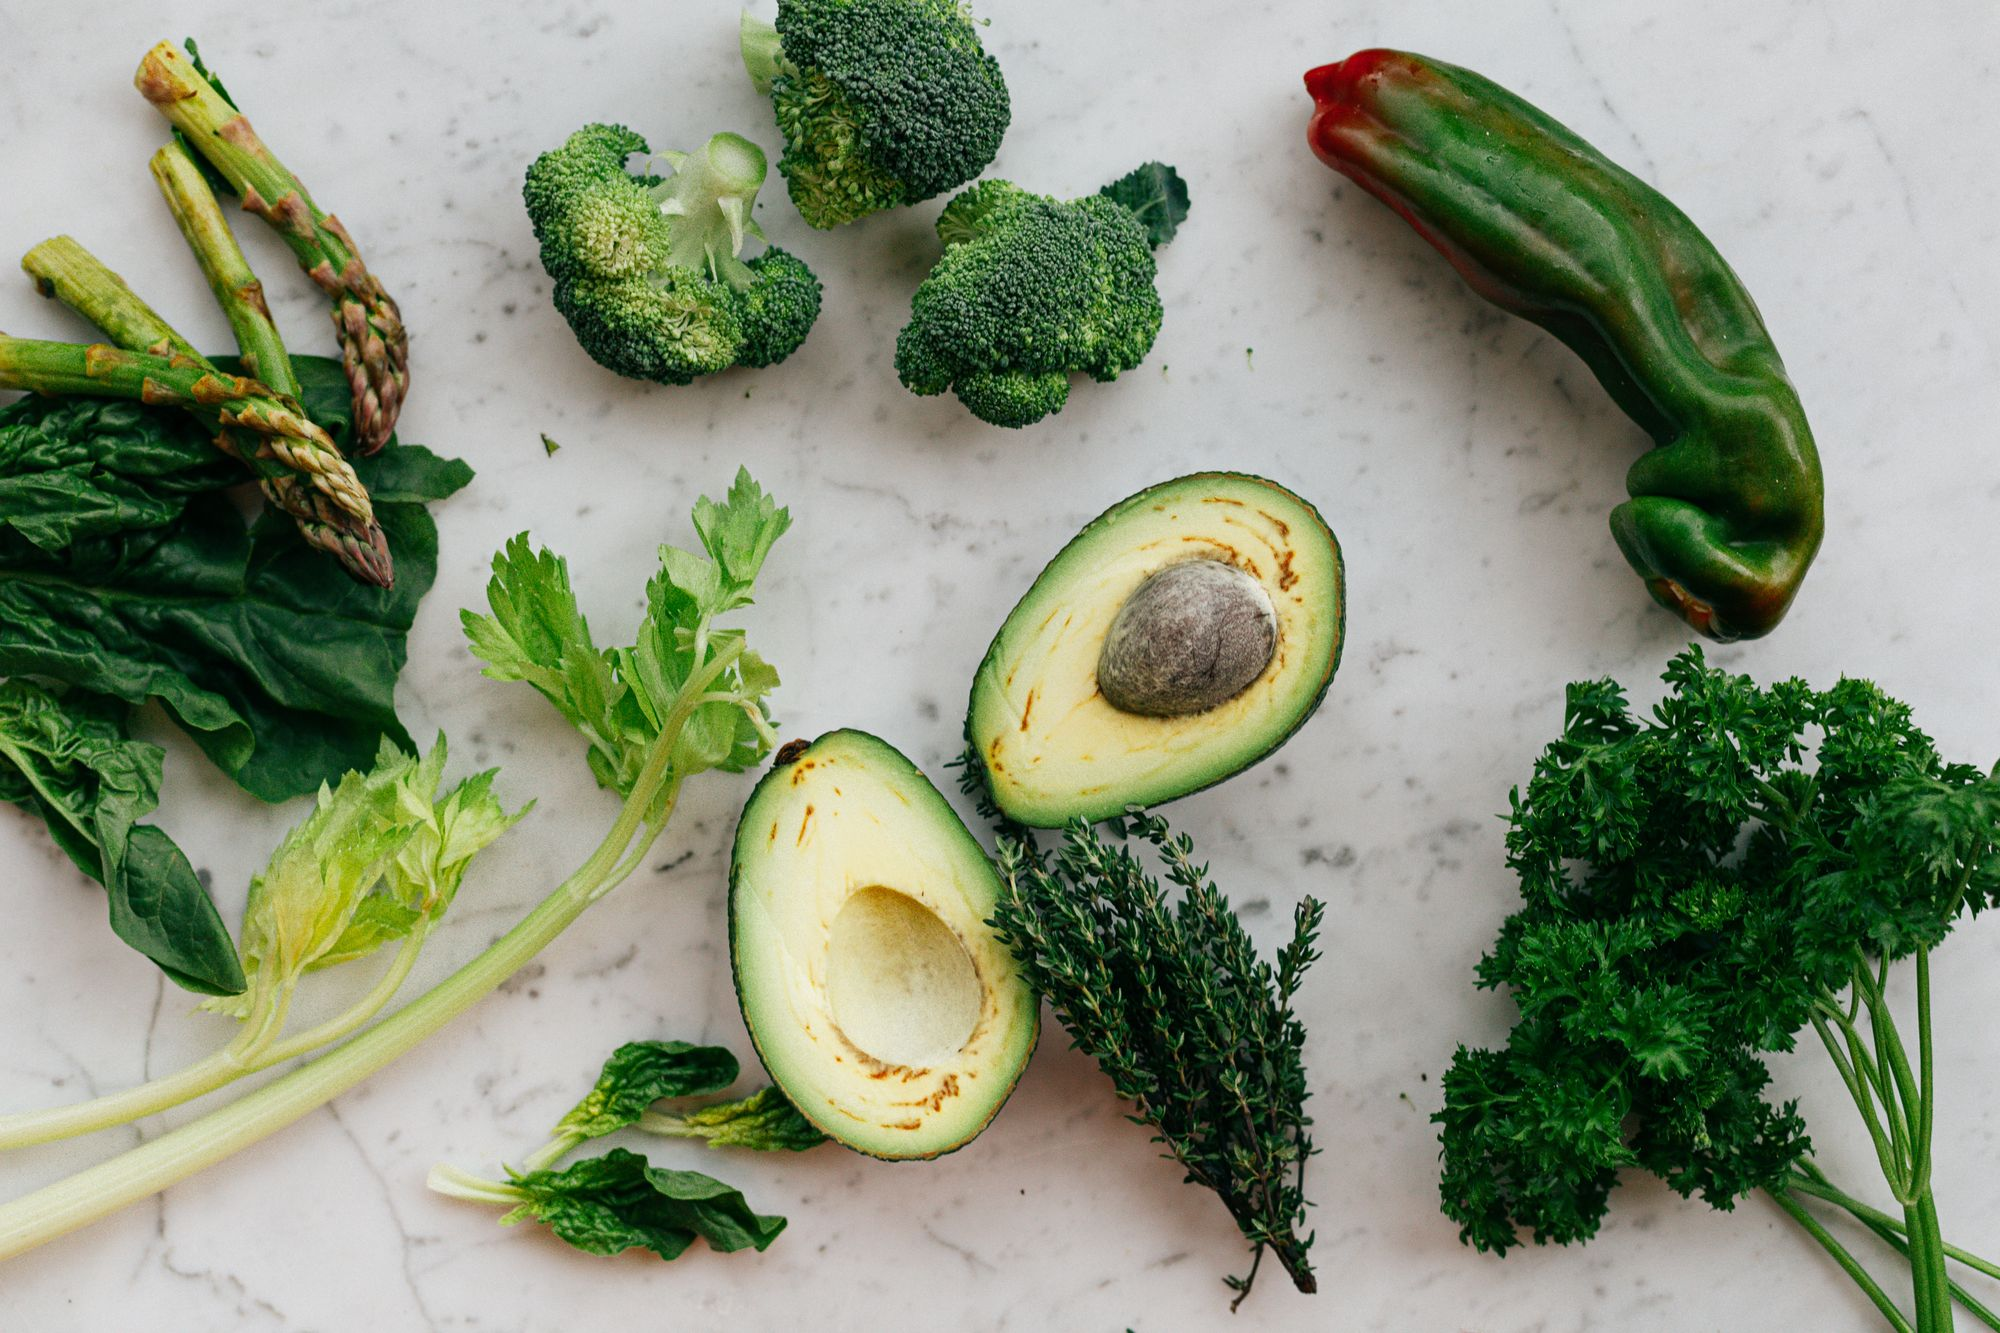 Leafy greens and healthy fats are some of the best brain foods.